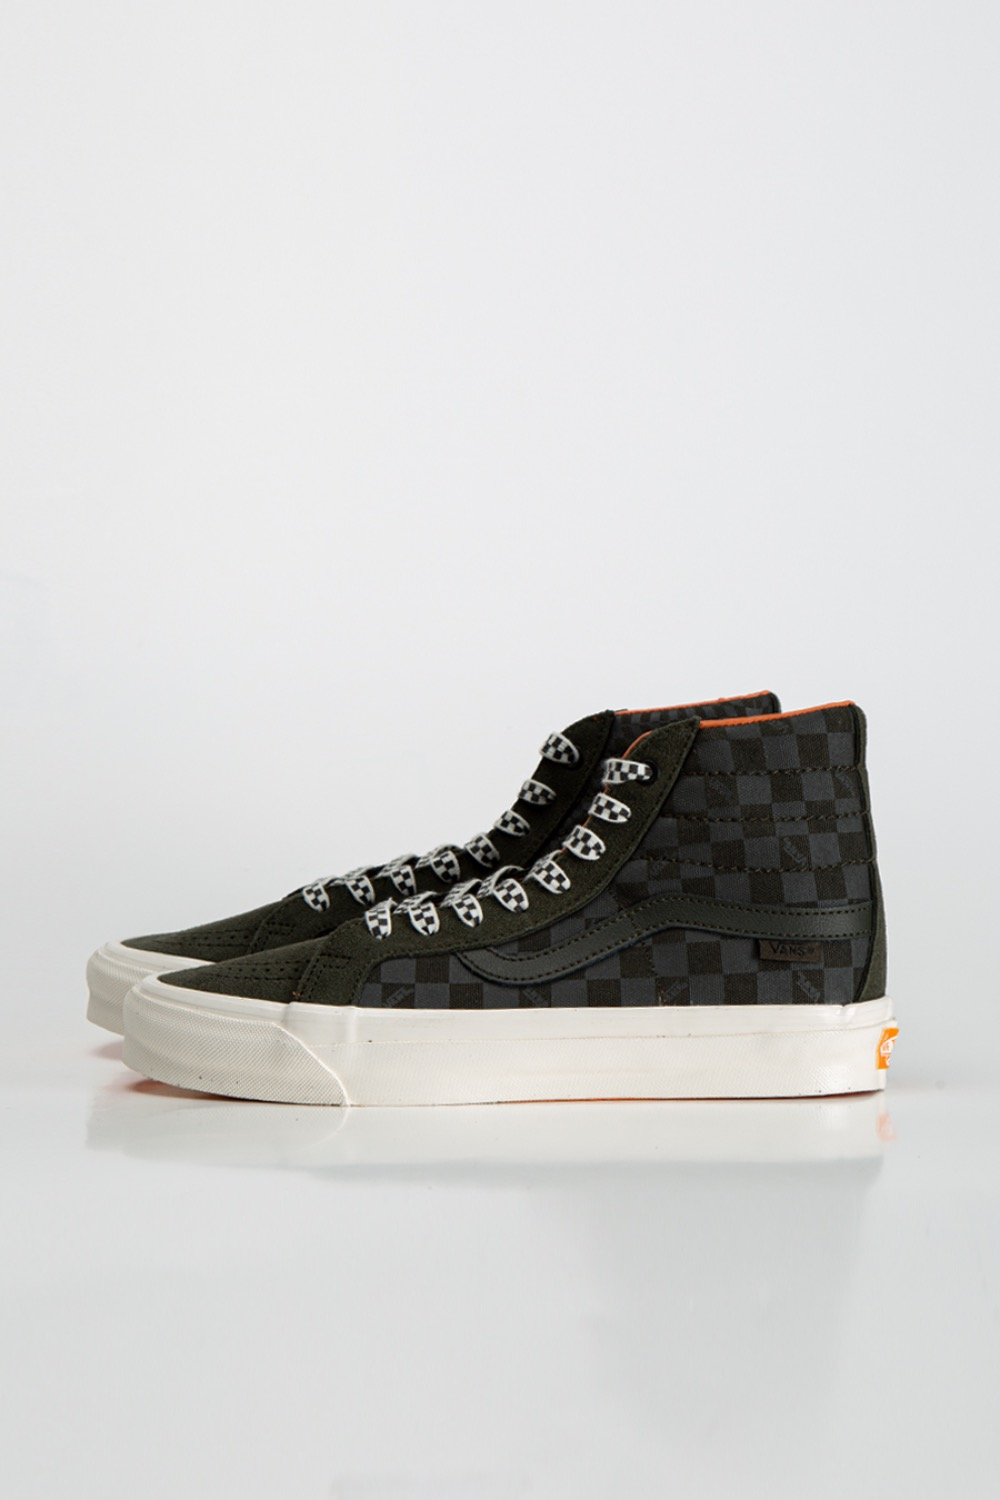 OG SK8-HI LX(YOSHIDA&CO PORTER) FOREST NIGHT/BLACK INK